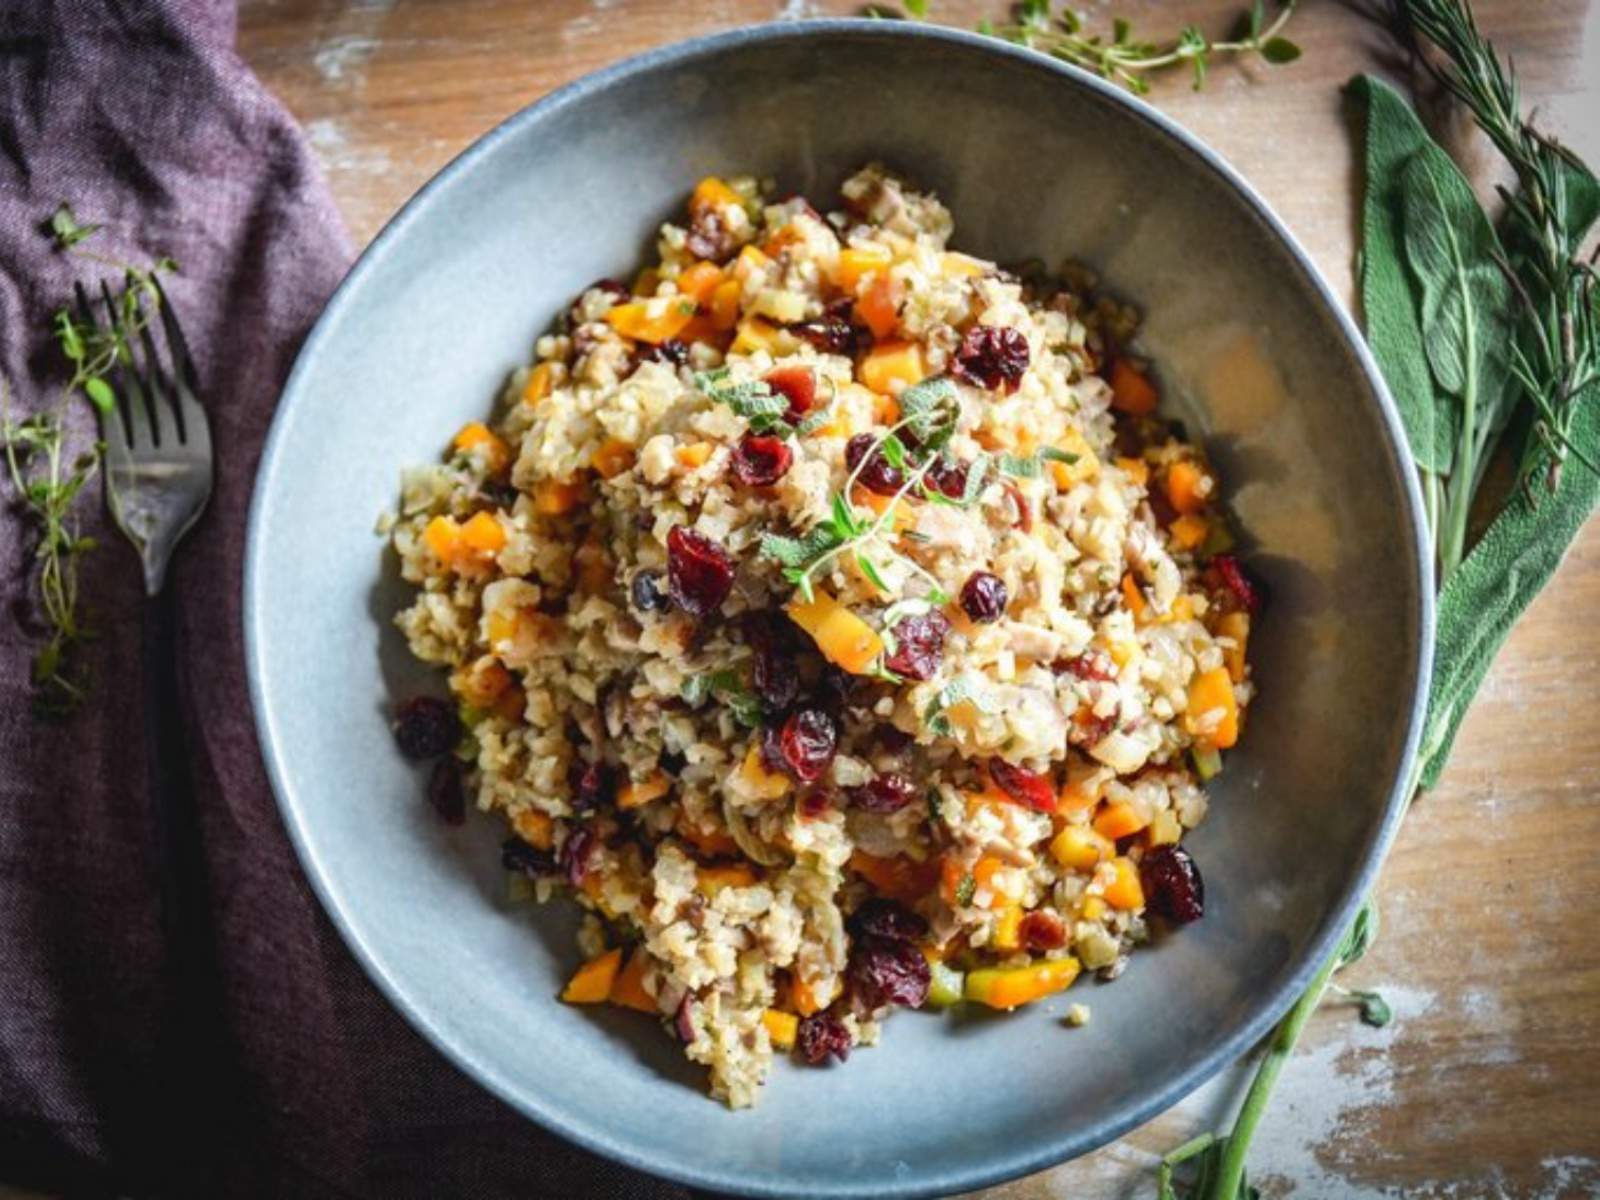 Cauliflower Cranberry Stuffing